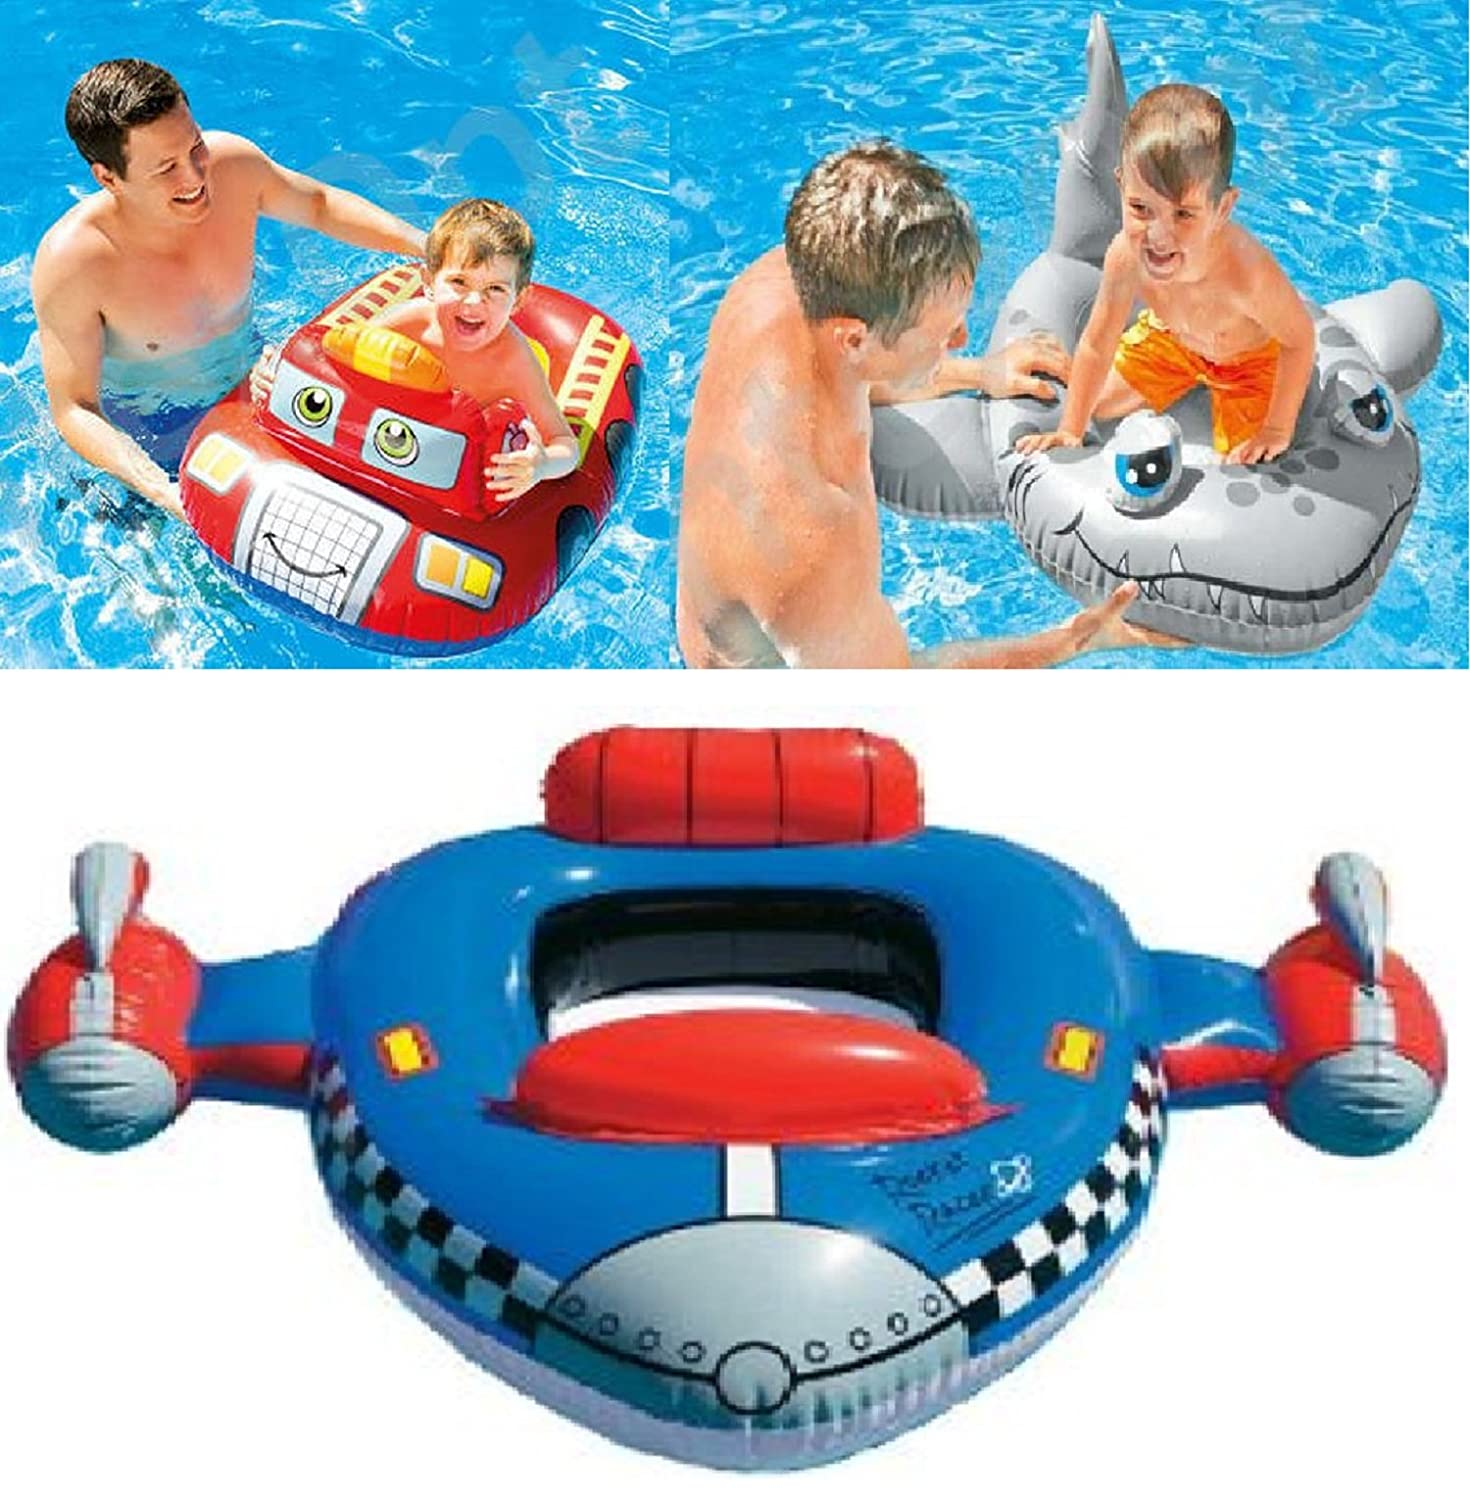 Product details of new inflatable floating swim ring kids children toy - Kids Children S Baby Inflatable Pool Cruisers Dinghy Float Boat Swimming Beach Pool Toy Amazon Co Uk Kitchen Home